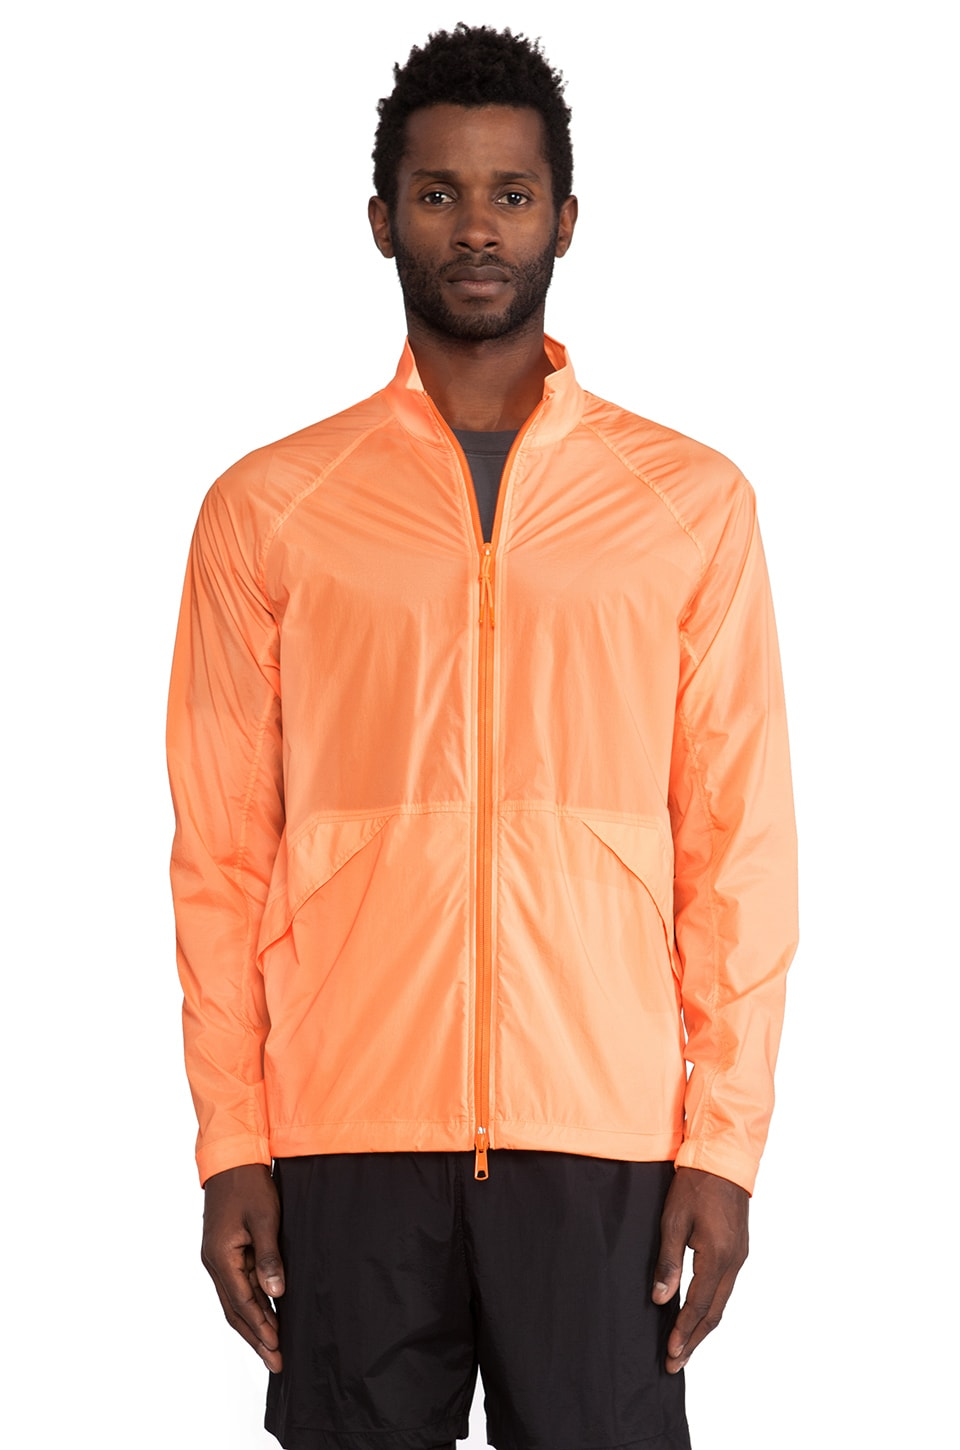 Theory 38 Ziptor Windbreaker in Neon